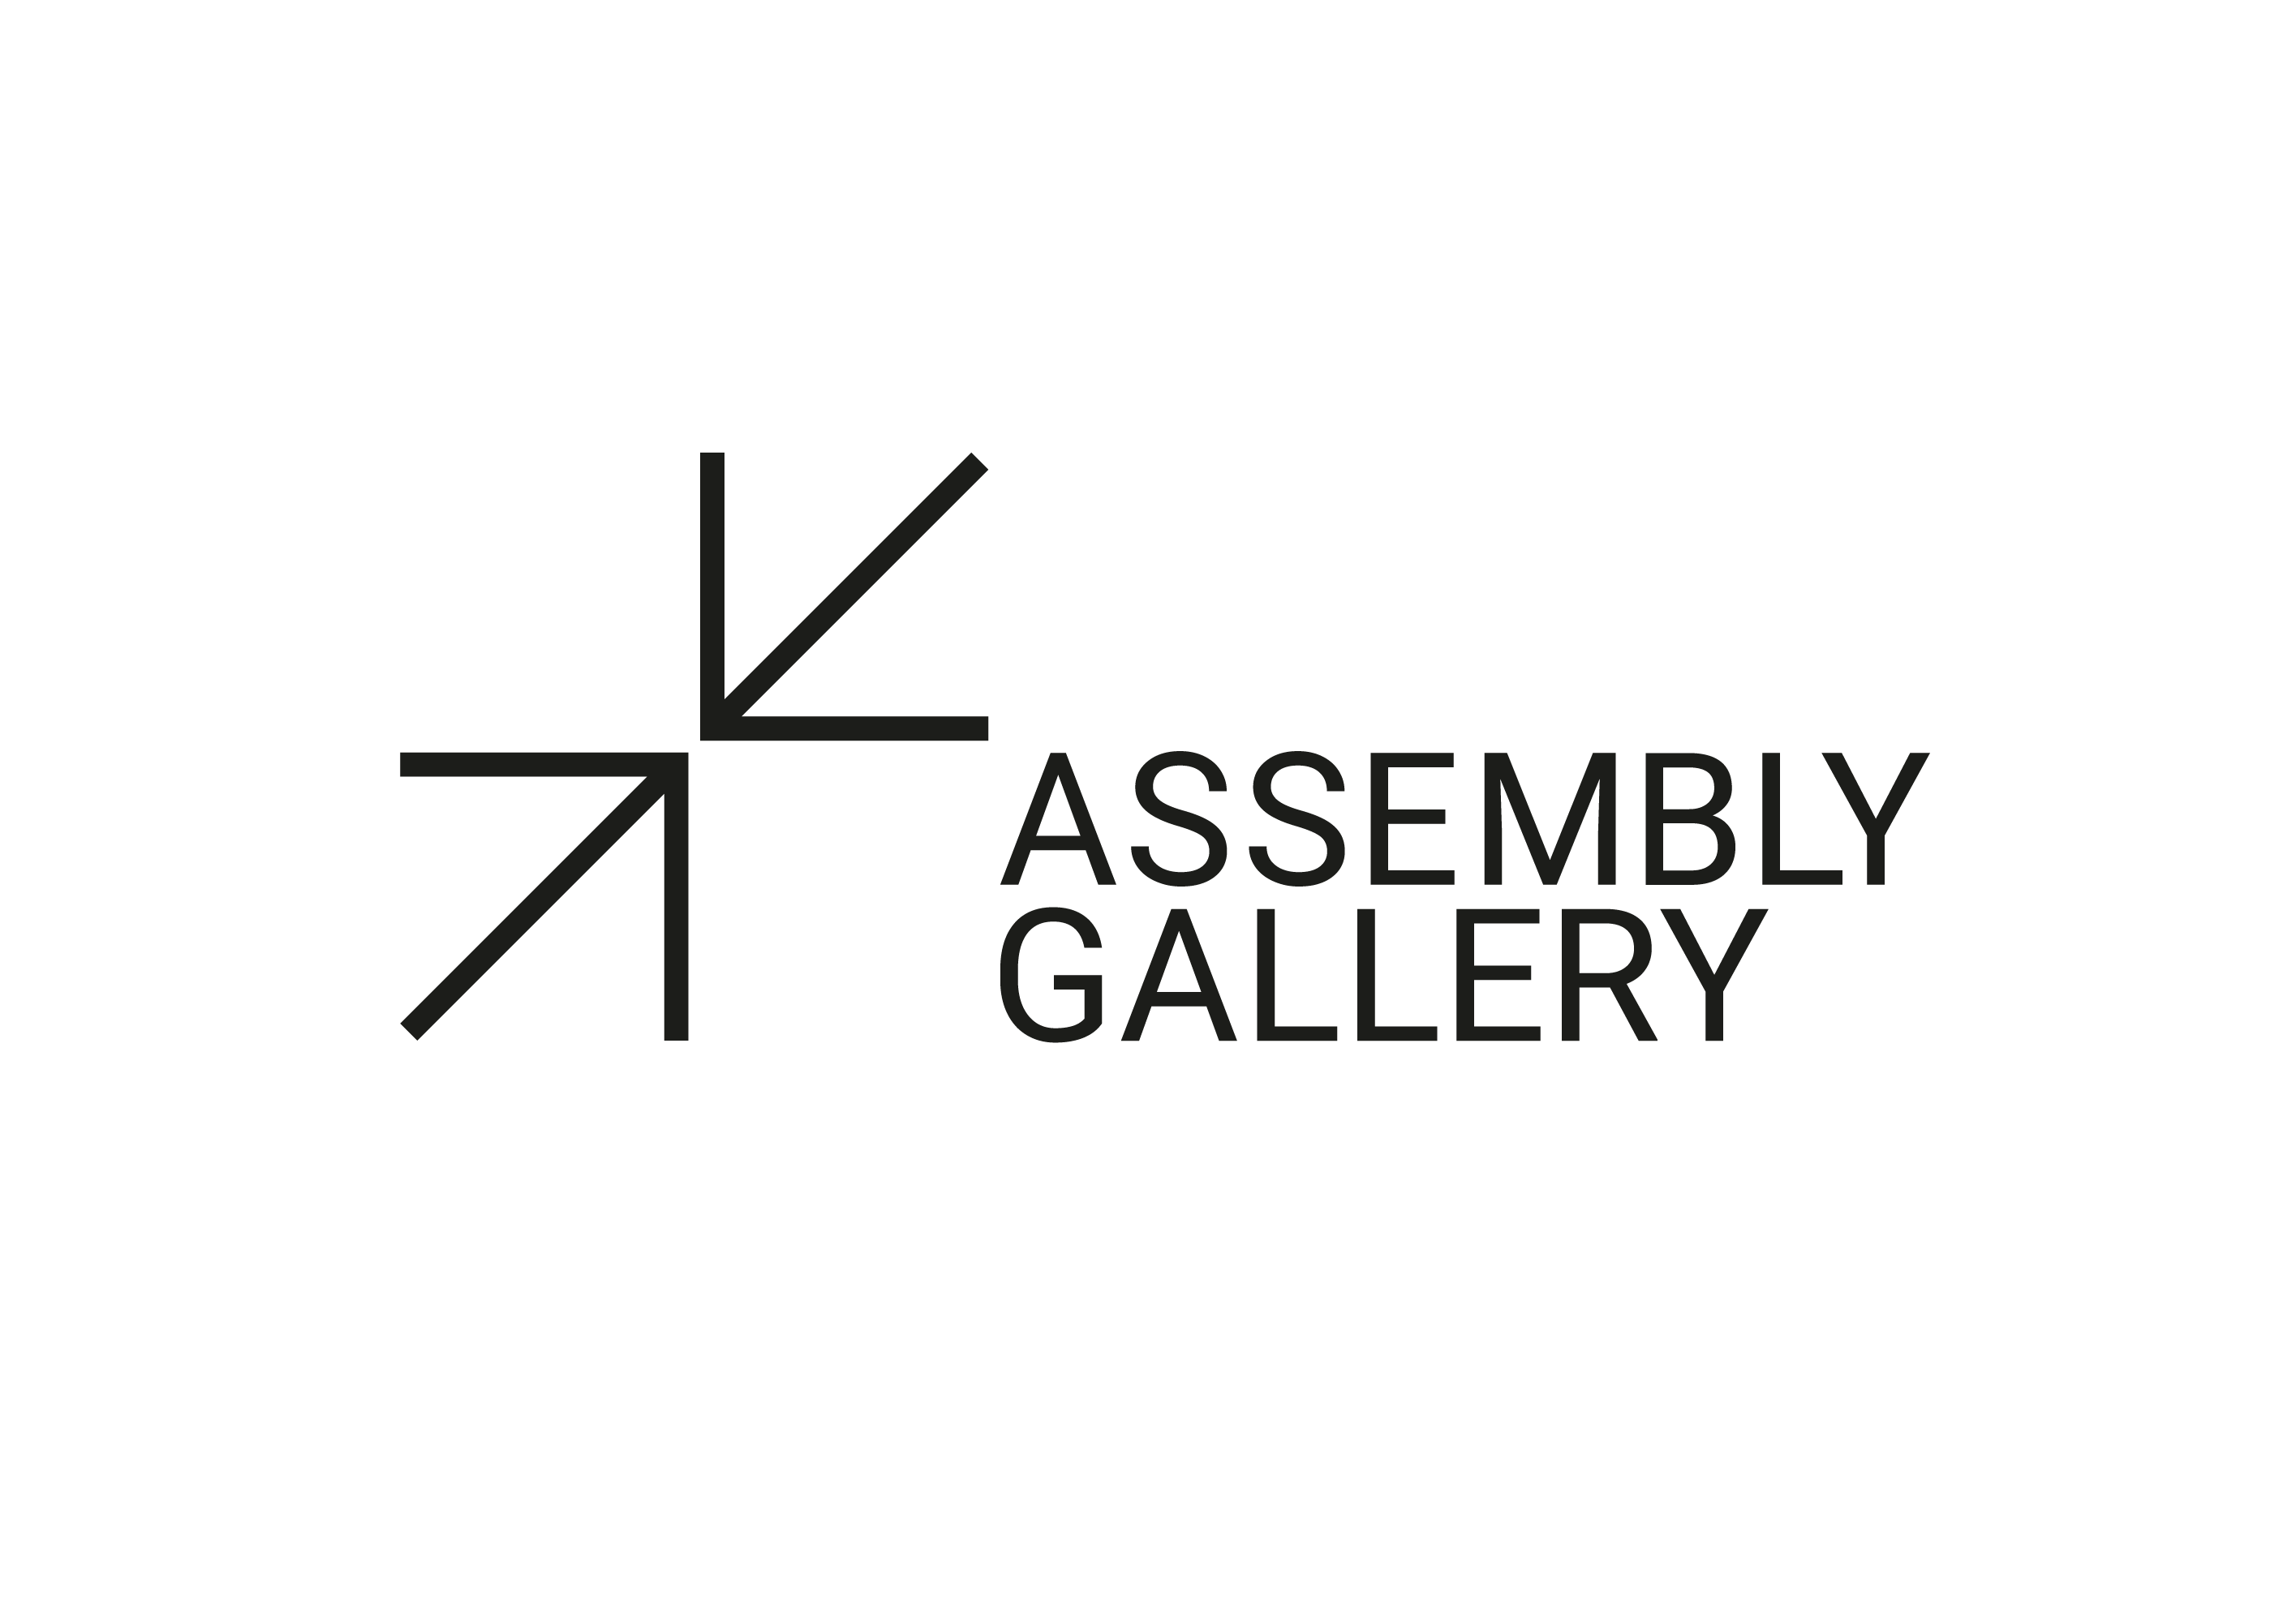 Assembly Gallery